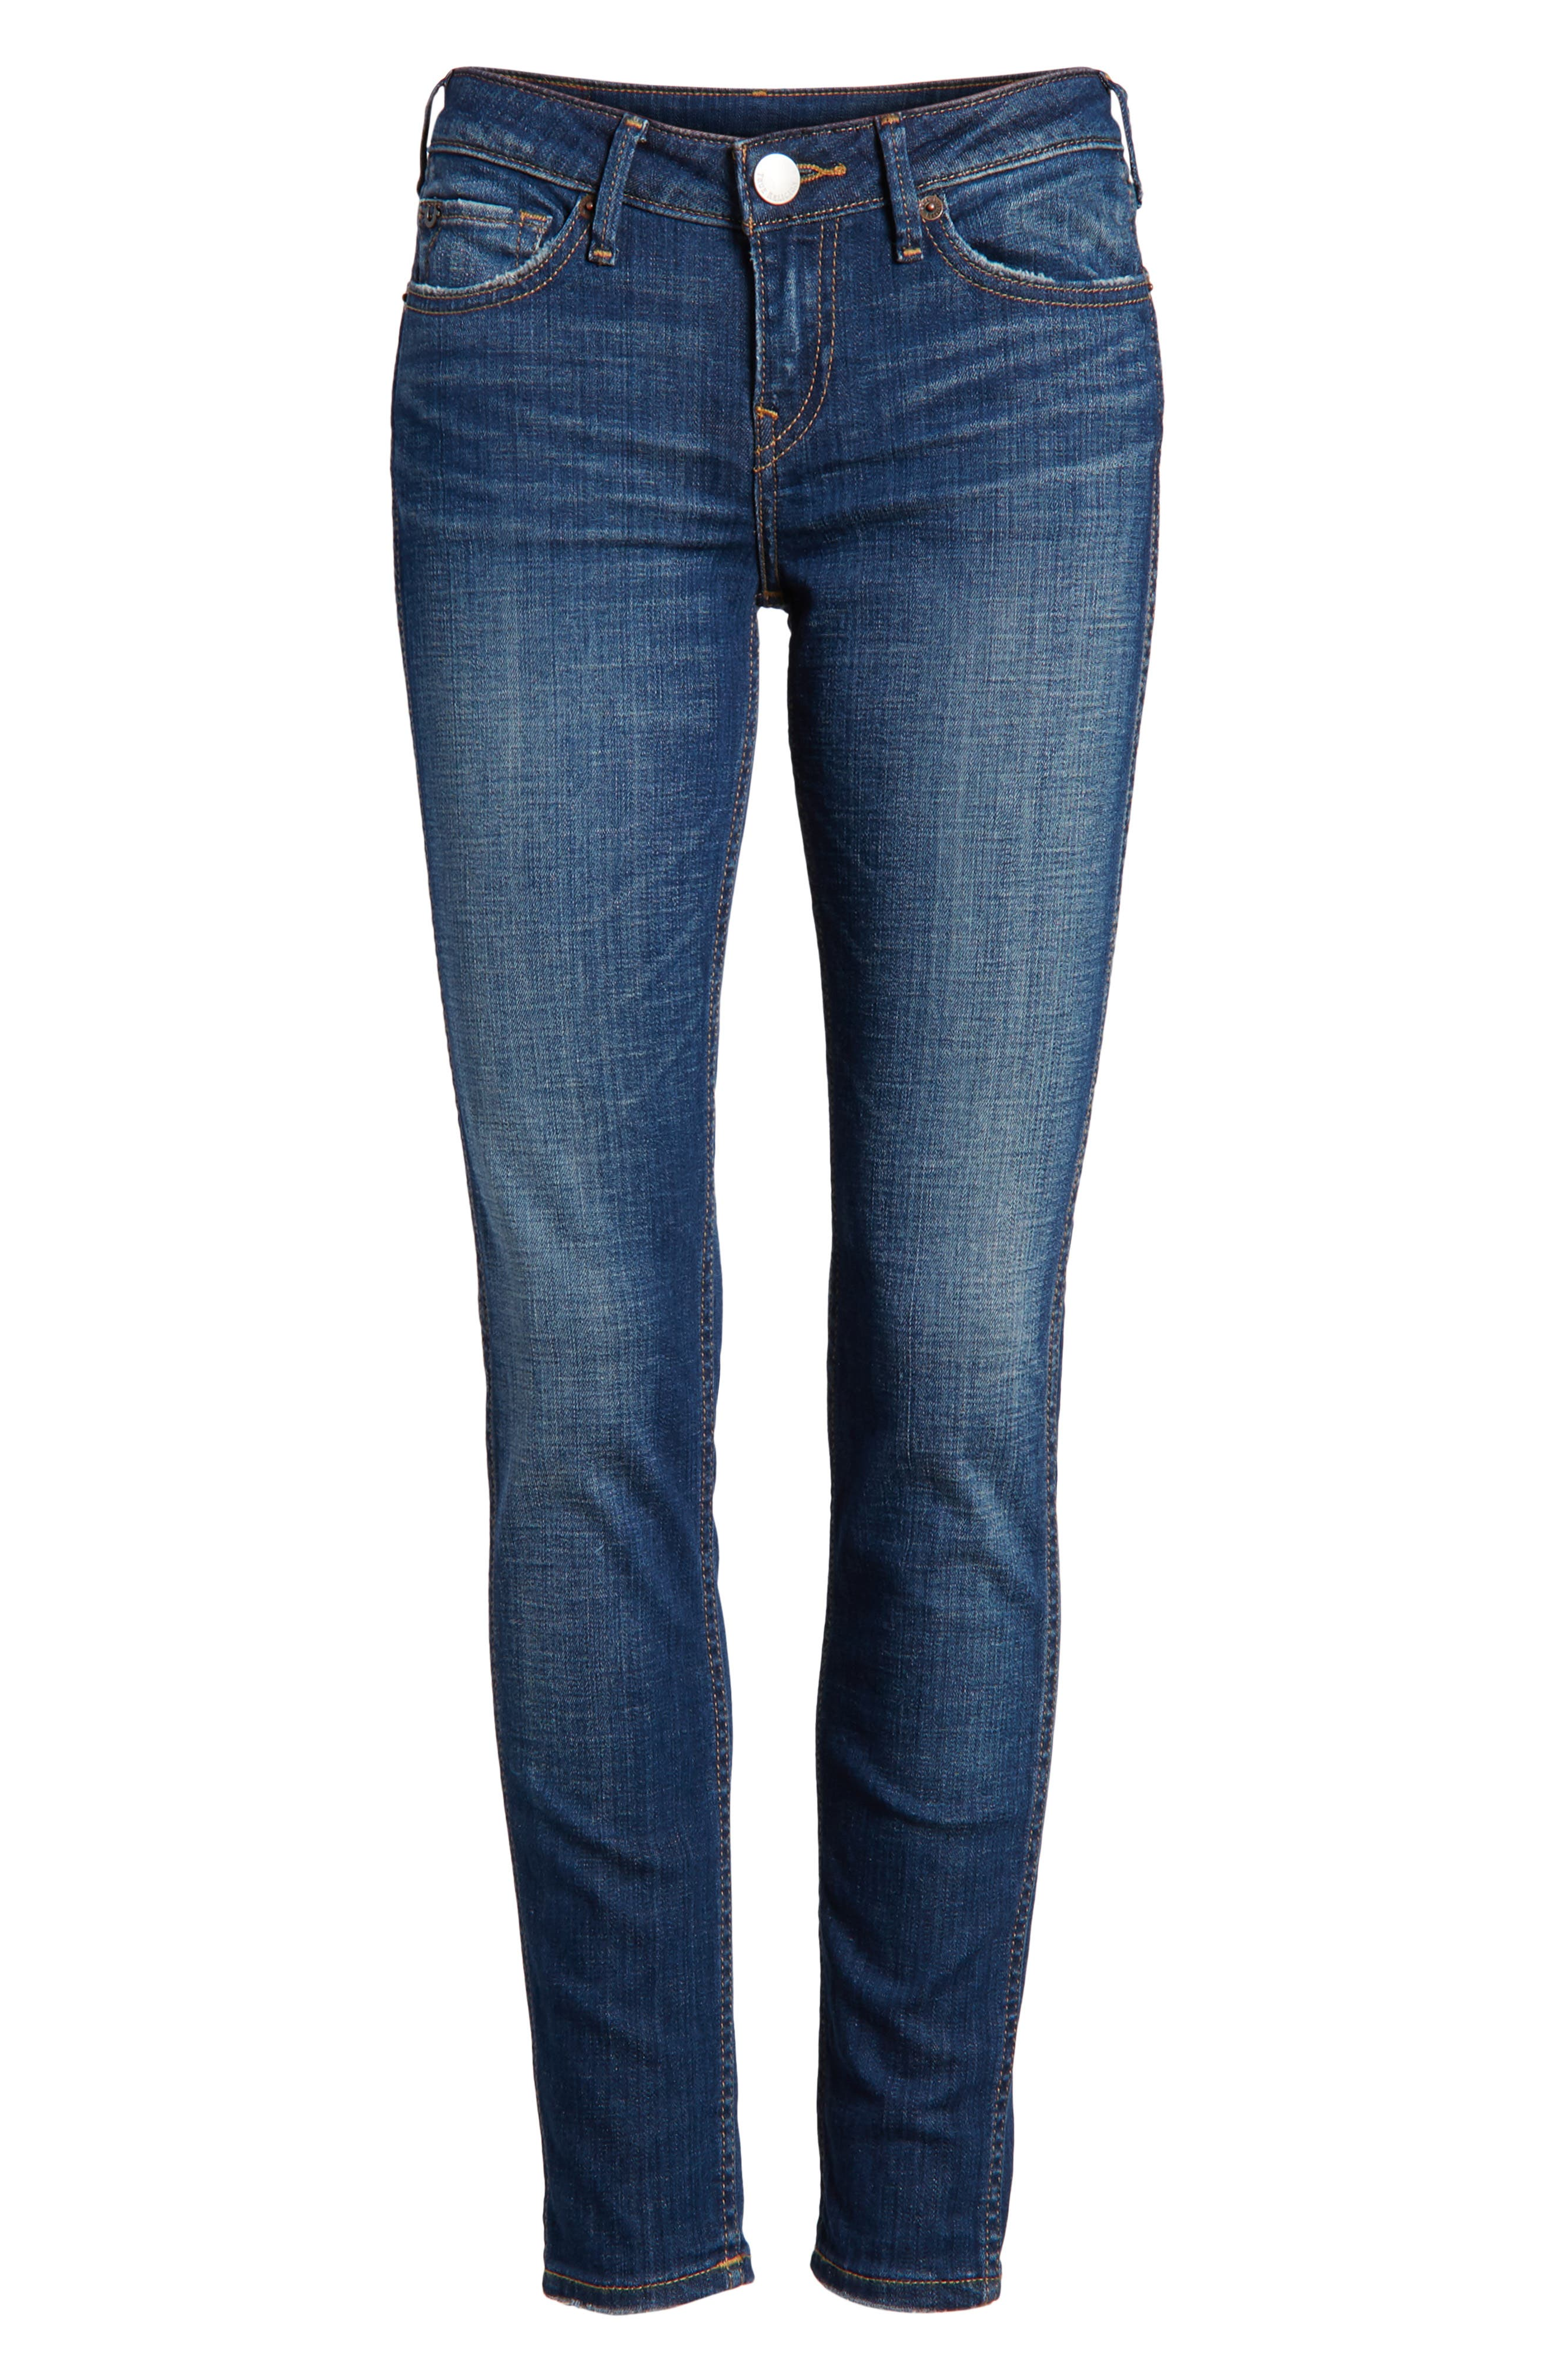 Halle Mid Rise Super Skinny Jeans,                             Alternate thumbnail 7, color,                             401